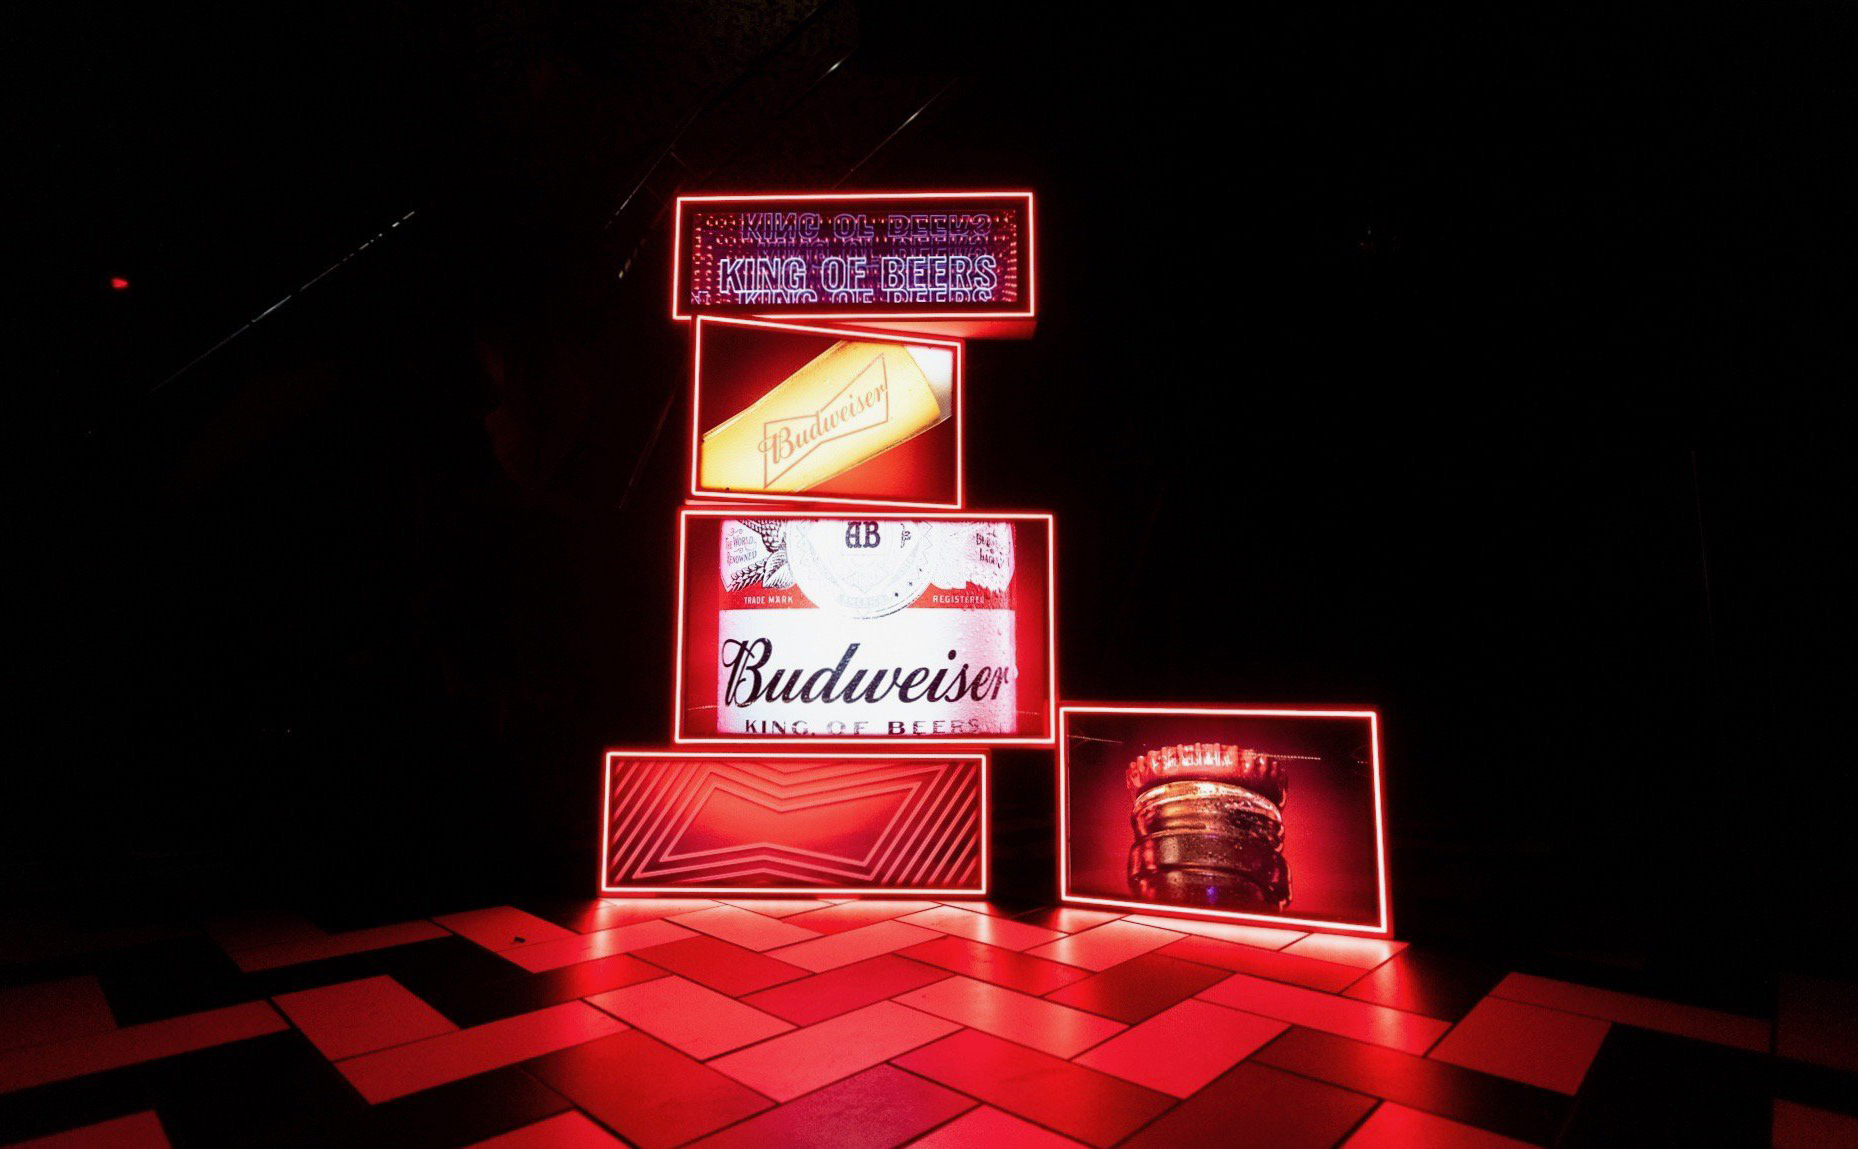 Budweiser / KING OF BEERS SHE'S BACK